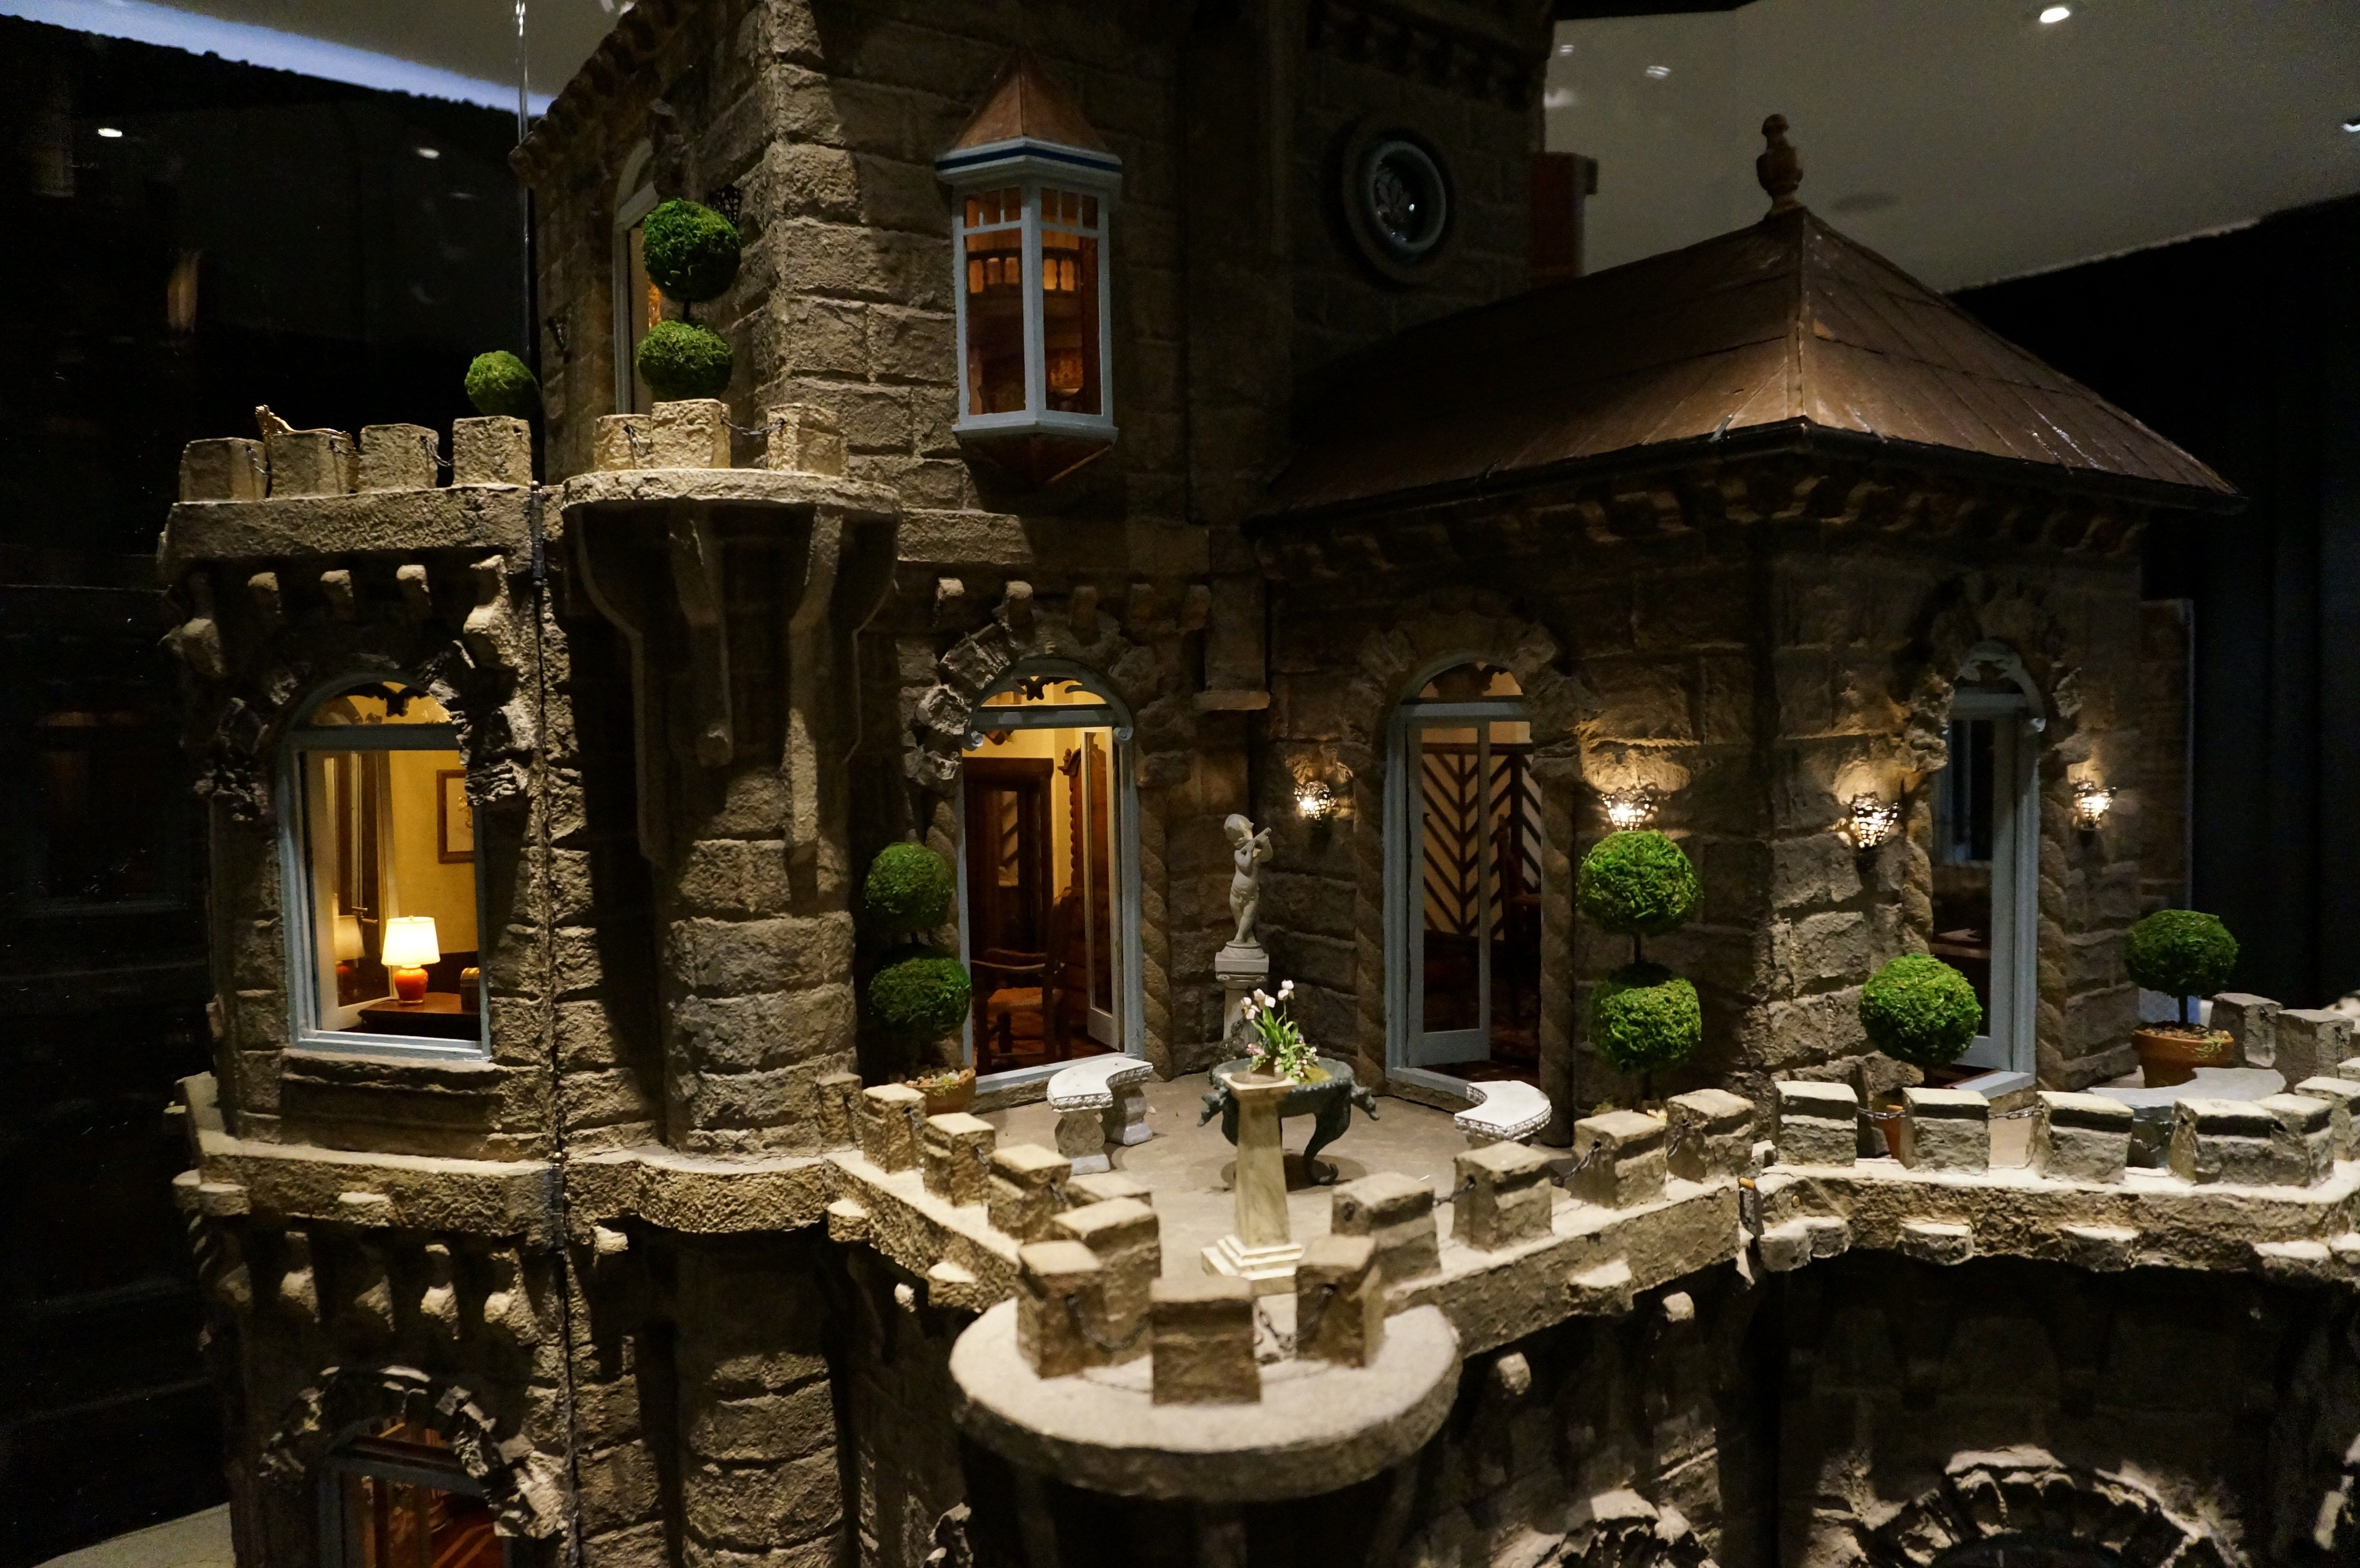 Astolat Castle Dollhouse ~ Valued At 85 Million, The Most